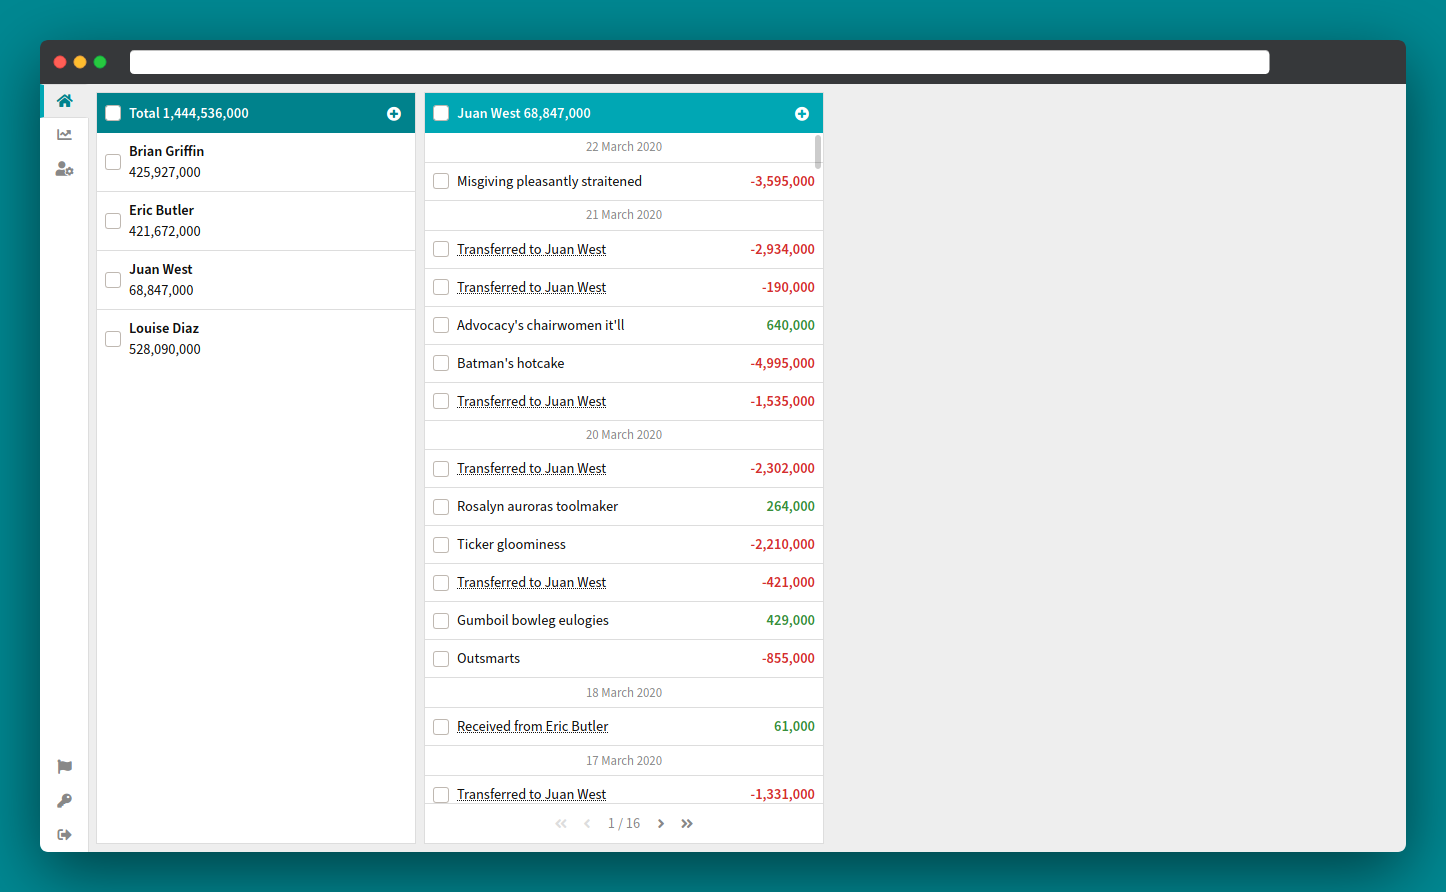 Screenshot that shows the basic income and expense tracking